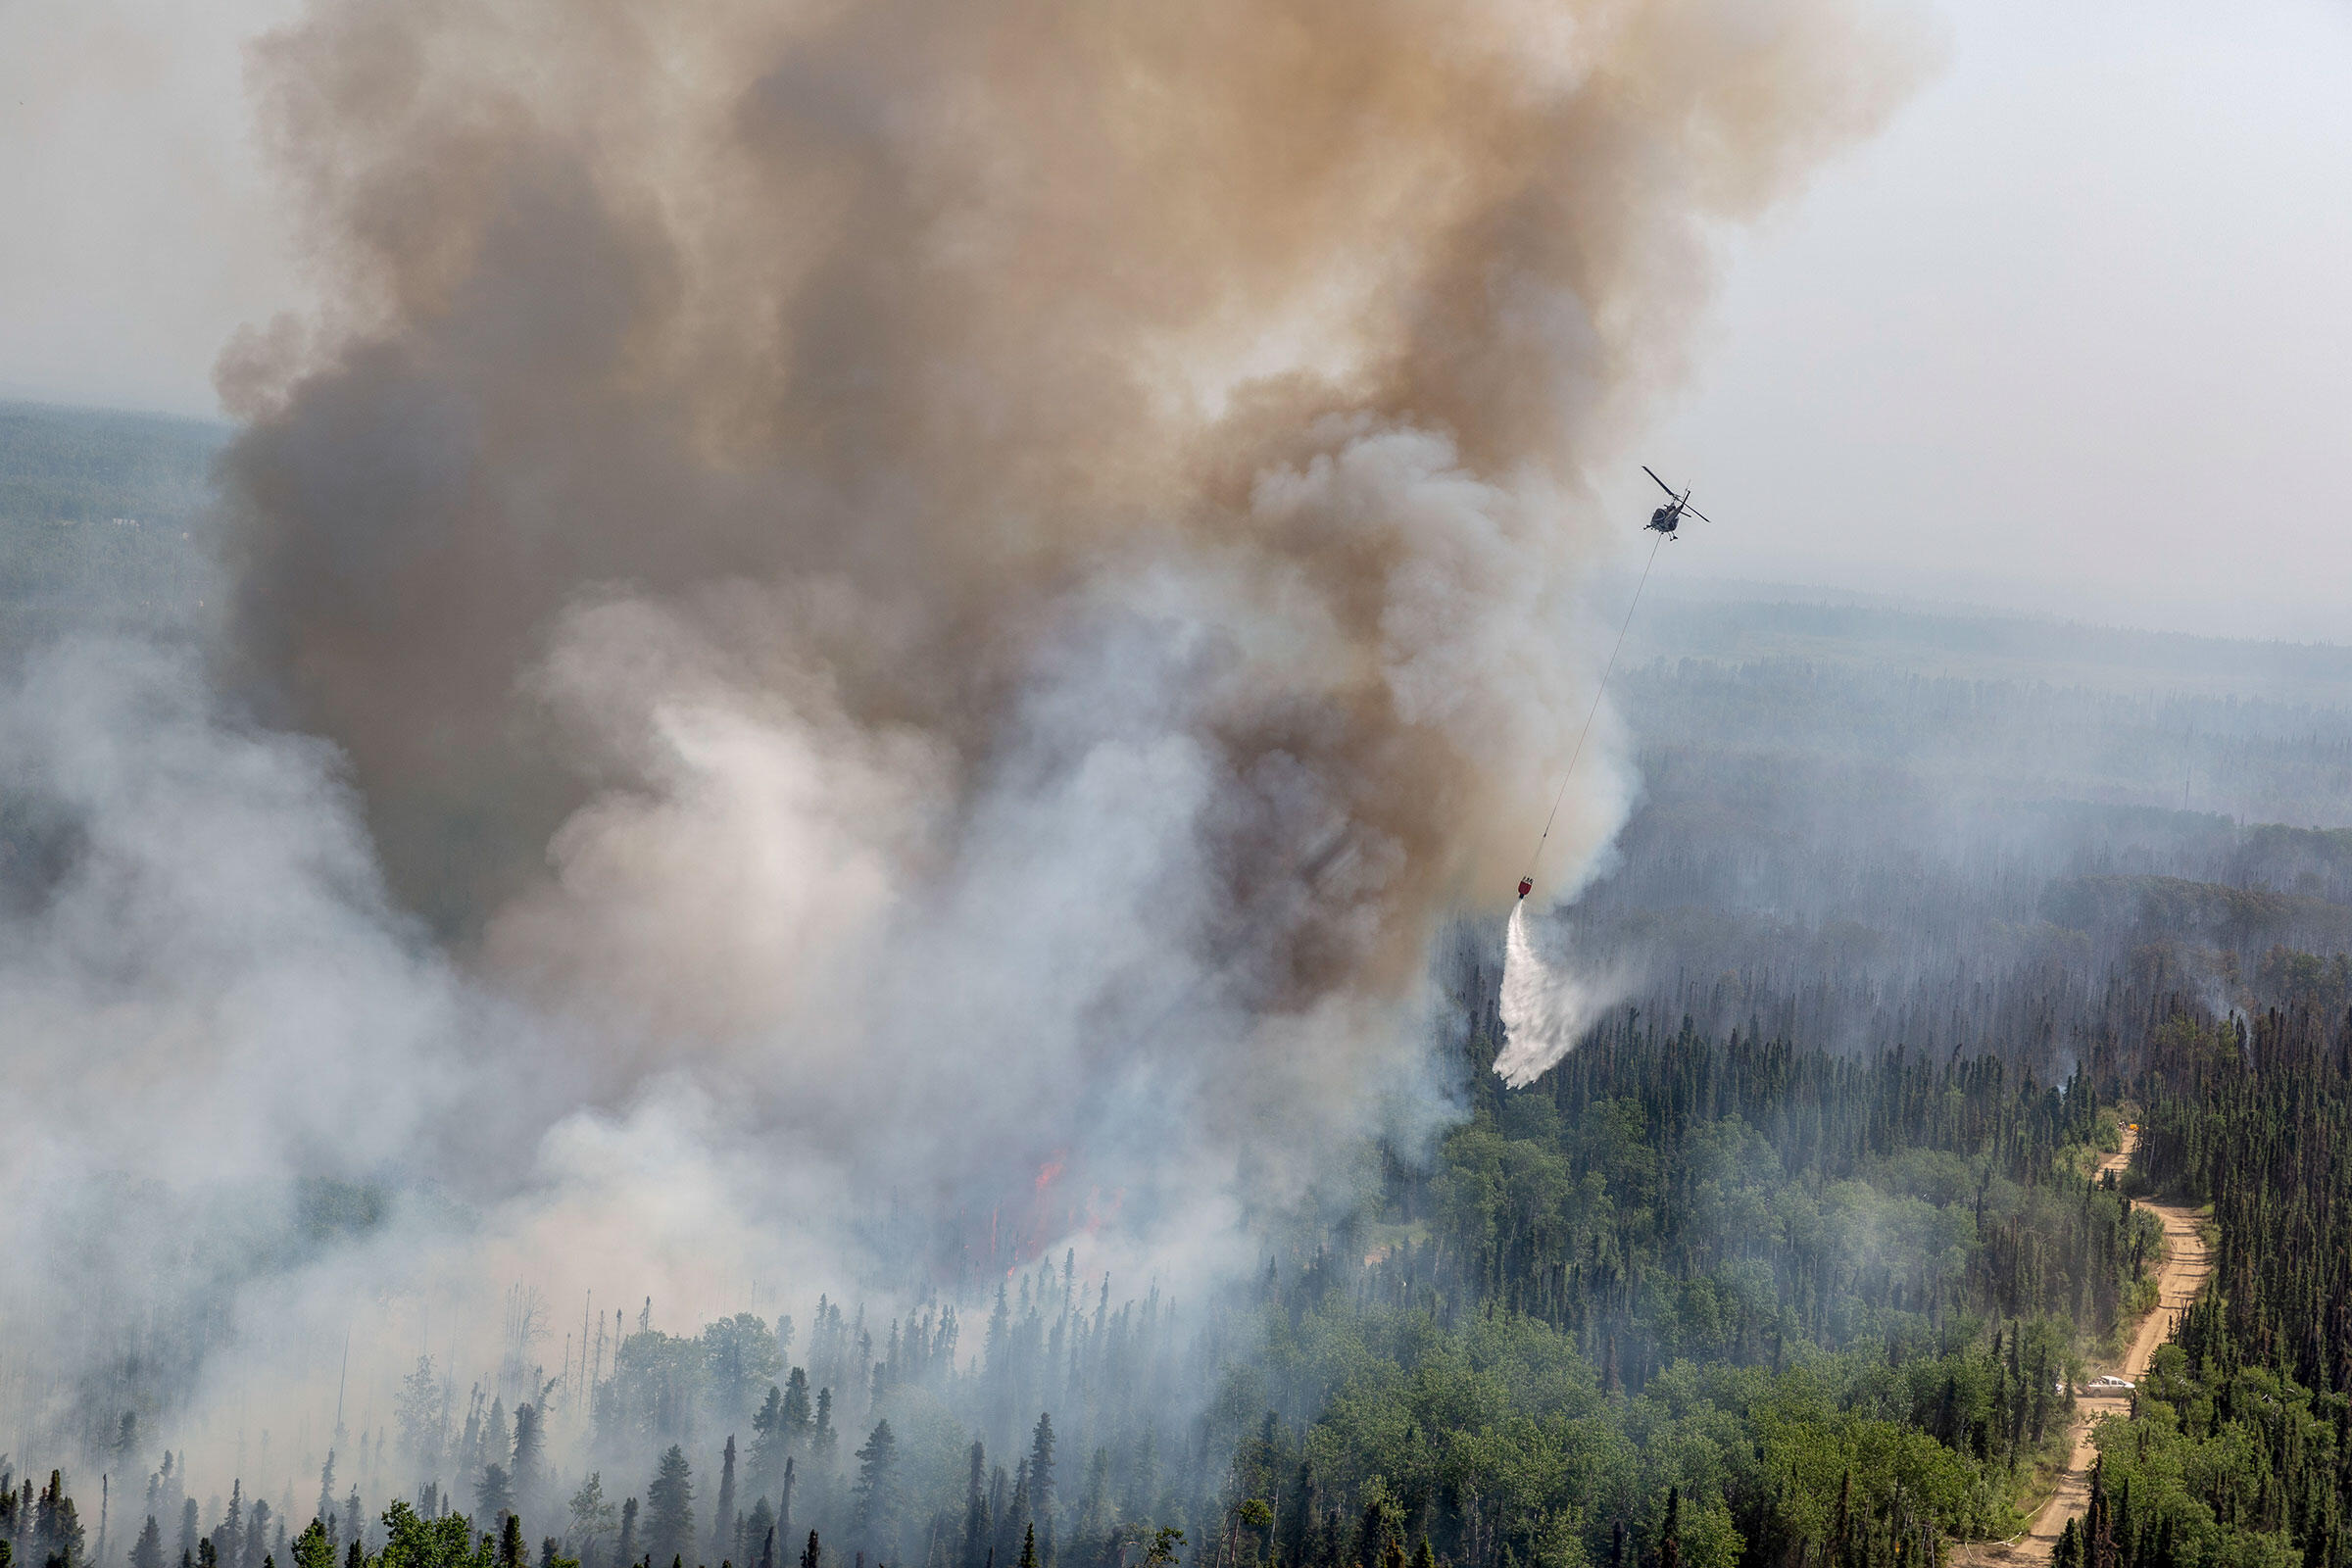 Alaska Army National Guard and Department of Forestry crews fight a wildfire near Talkeetna, Alaska. July 2019. Spc. Michael Risinger/U.S. Army National Guard